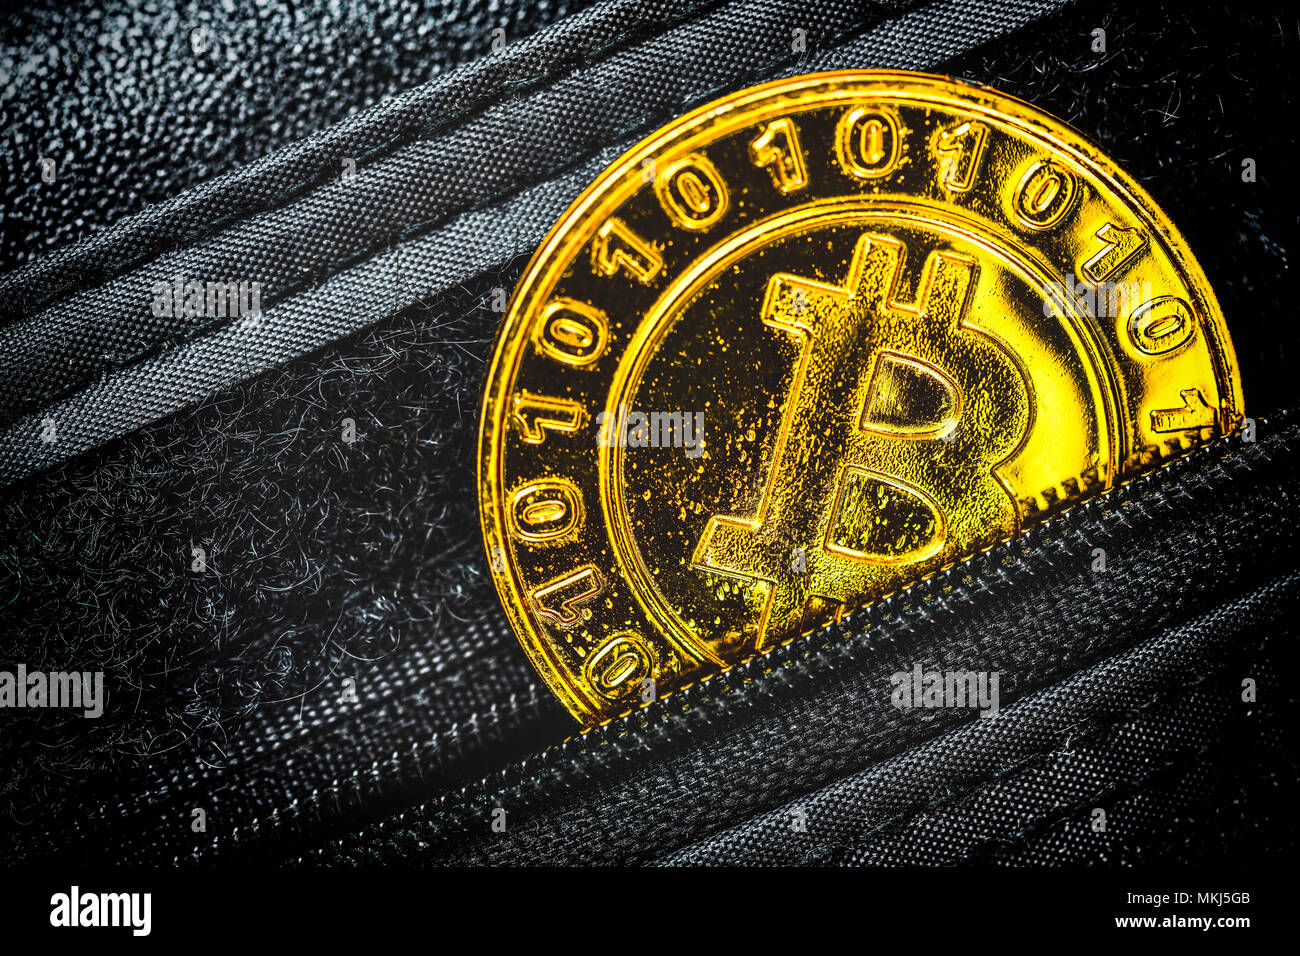 Coin with bitcoin characters in a wallet, Münze mit Bitcoin-Zeichen in einem Portemonnaie Stock Photo